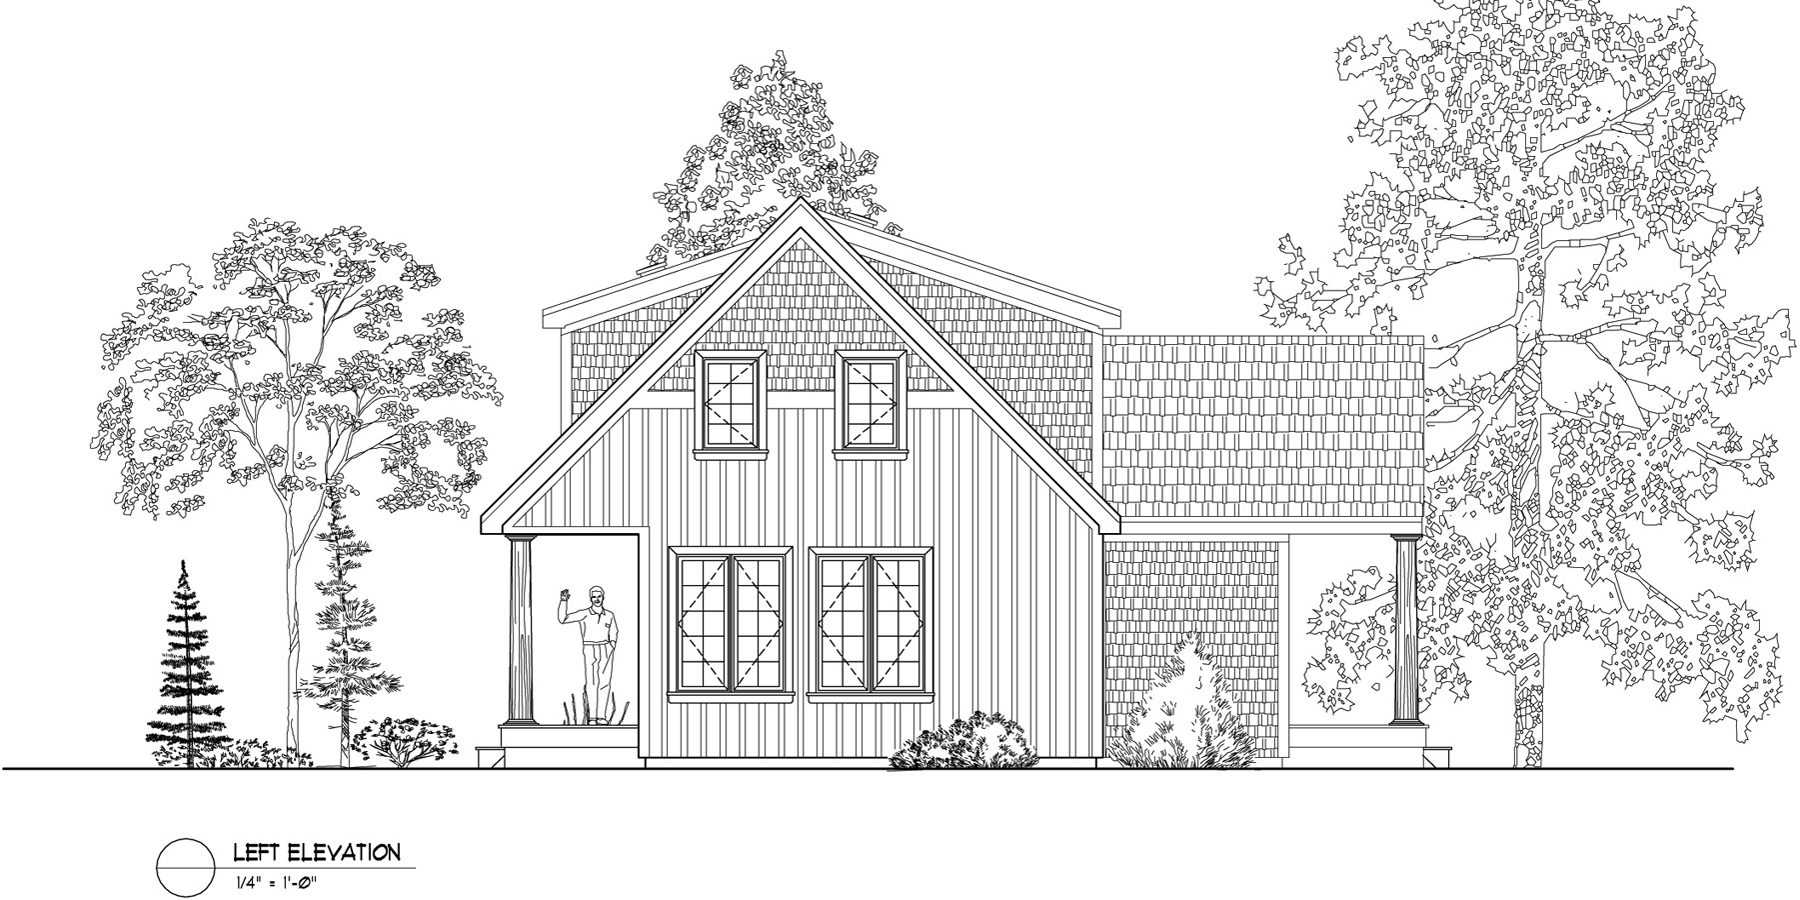 Normerica Timber Frames, House Plan, The Routt 3419, Left Elevation